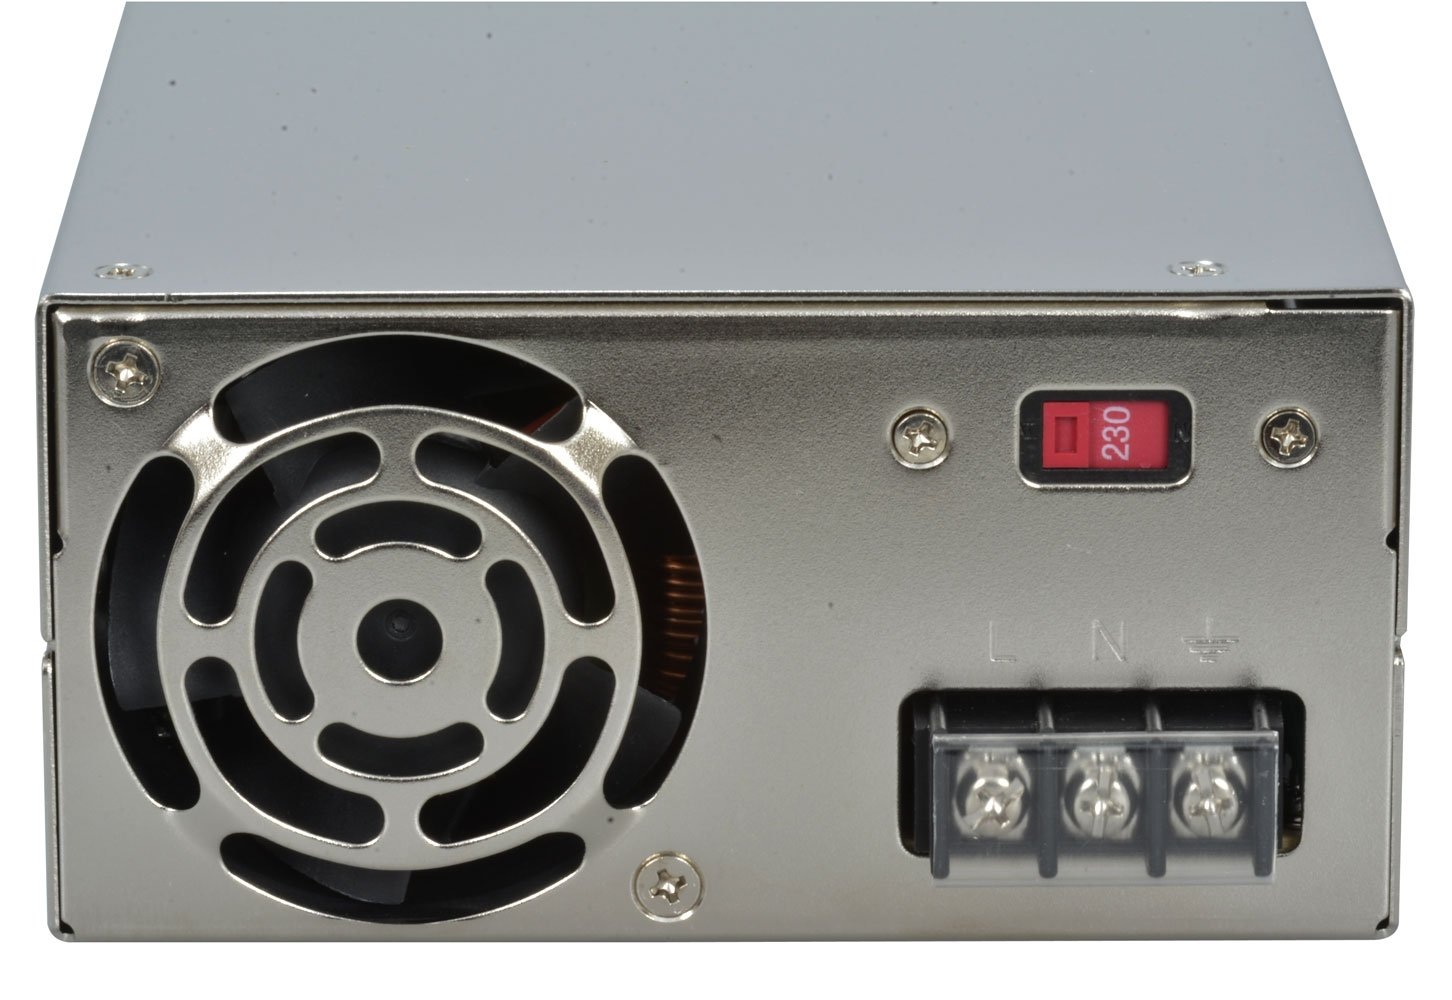 MEAN WELL SE-600-12 AC to DC Power Supply, Single Output, 12V, 50 Amp, 600W, 1.5'' by MEAN WELL (Image #4)